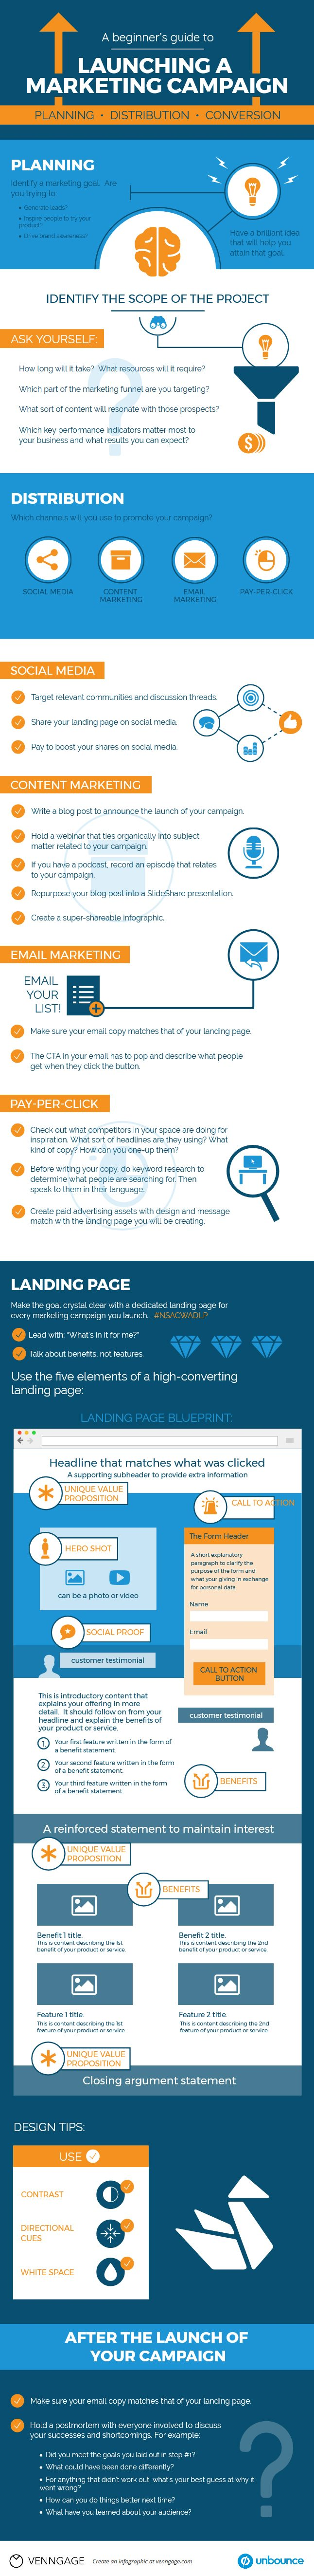 A Beginner's Guide to Launching a Successful Marketing Campaign [Infographic] | Social Media Today